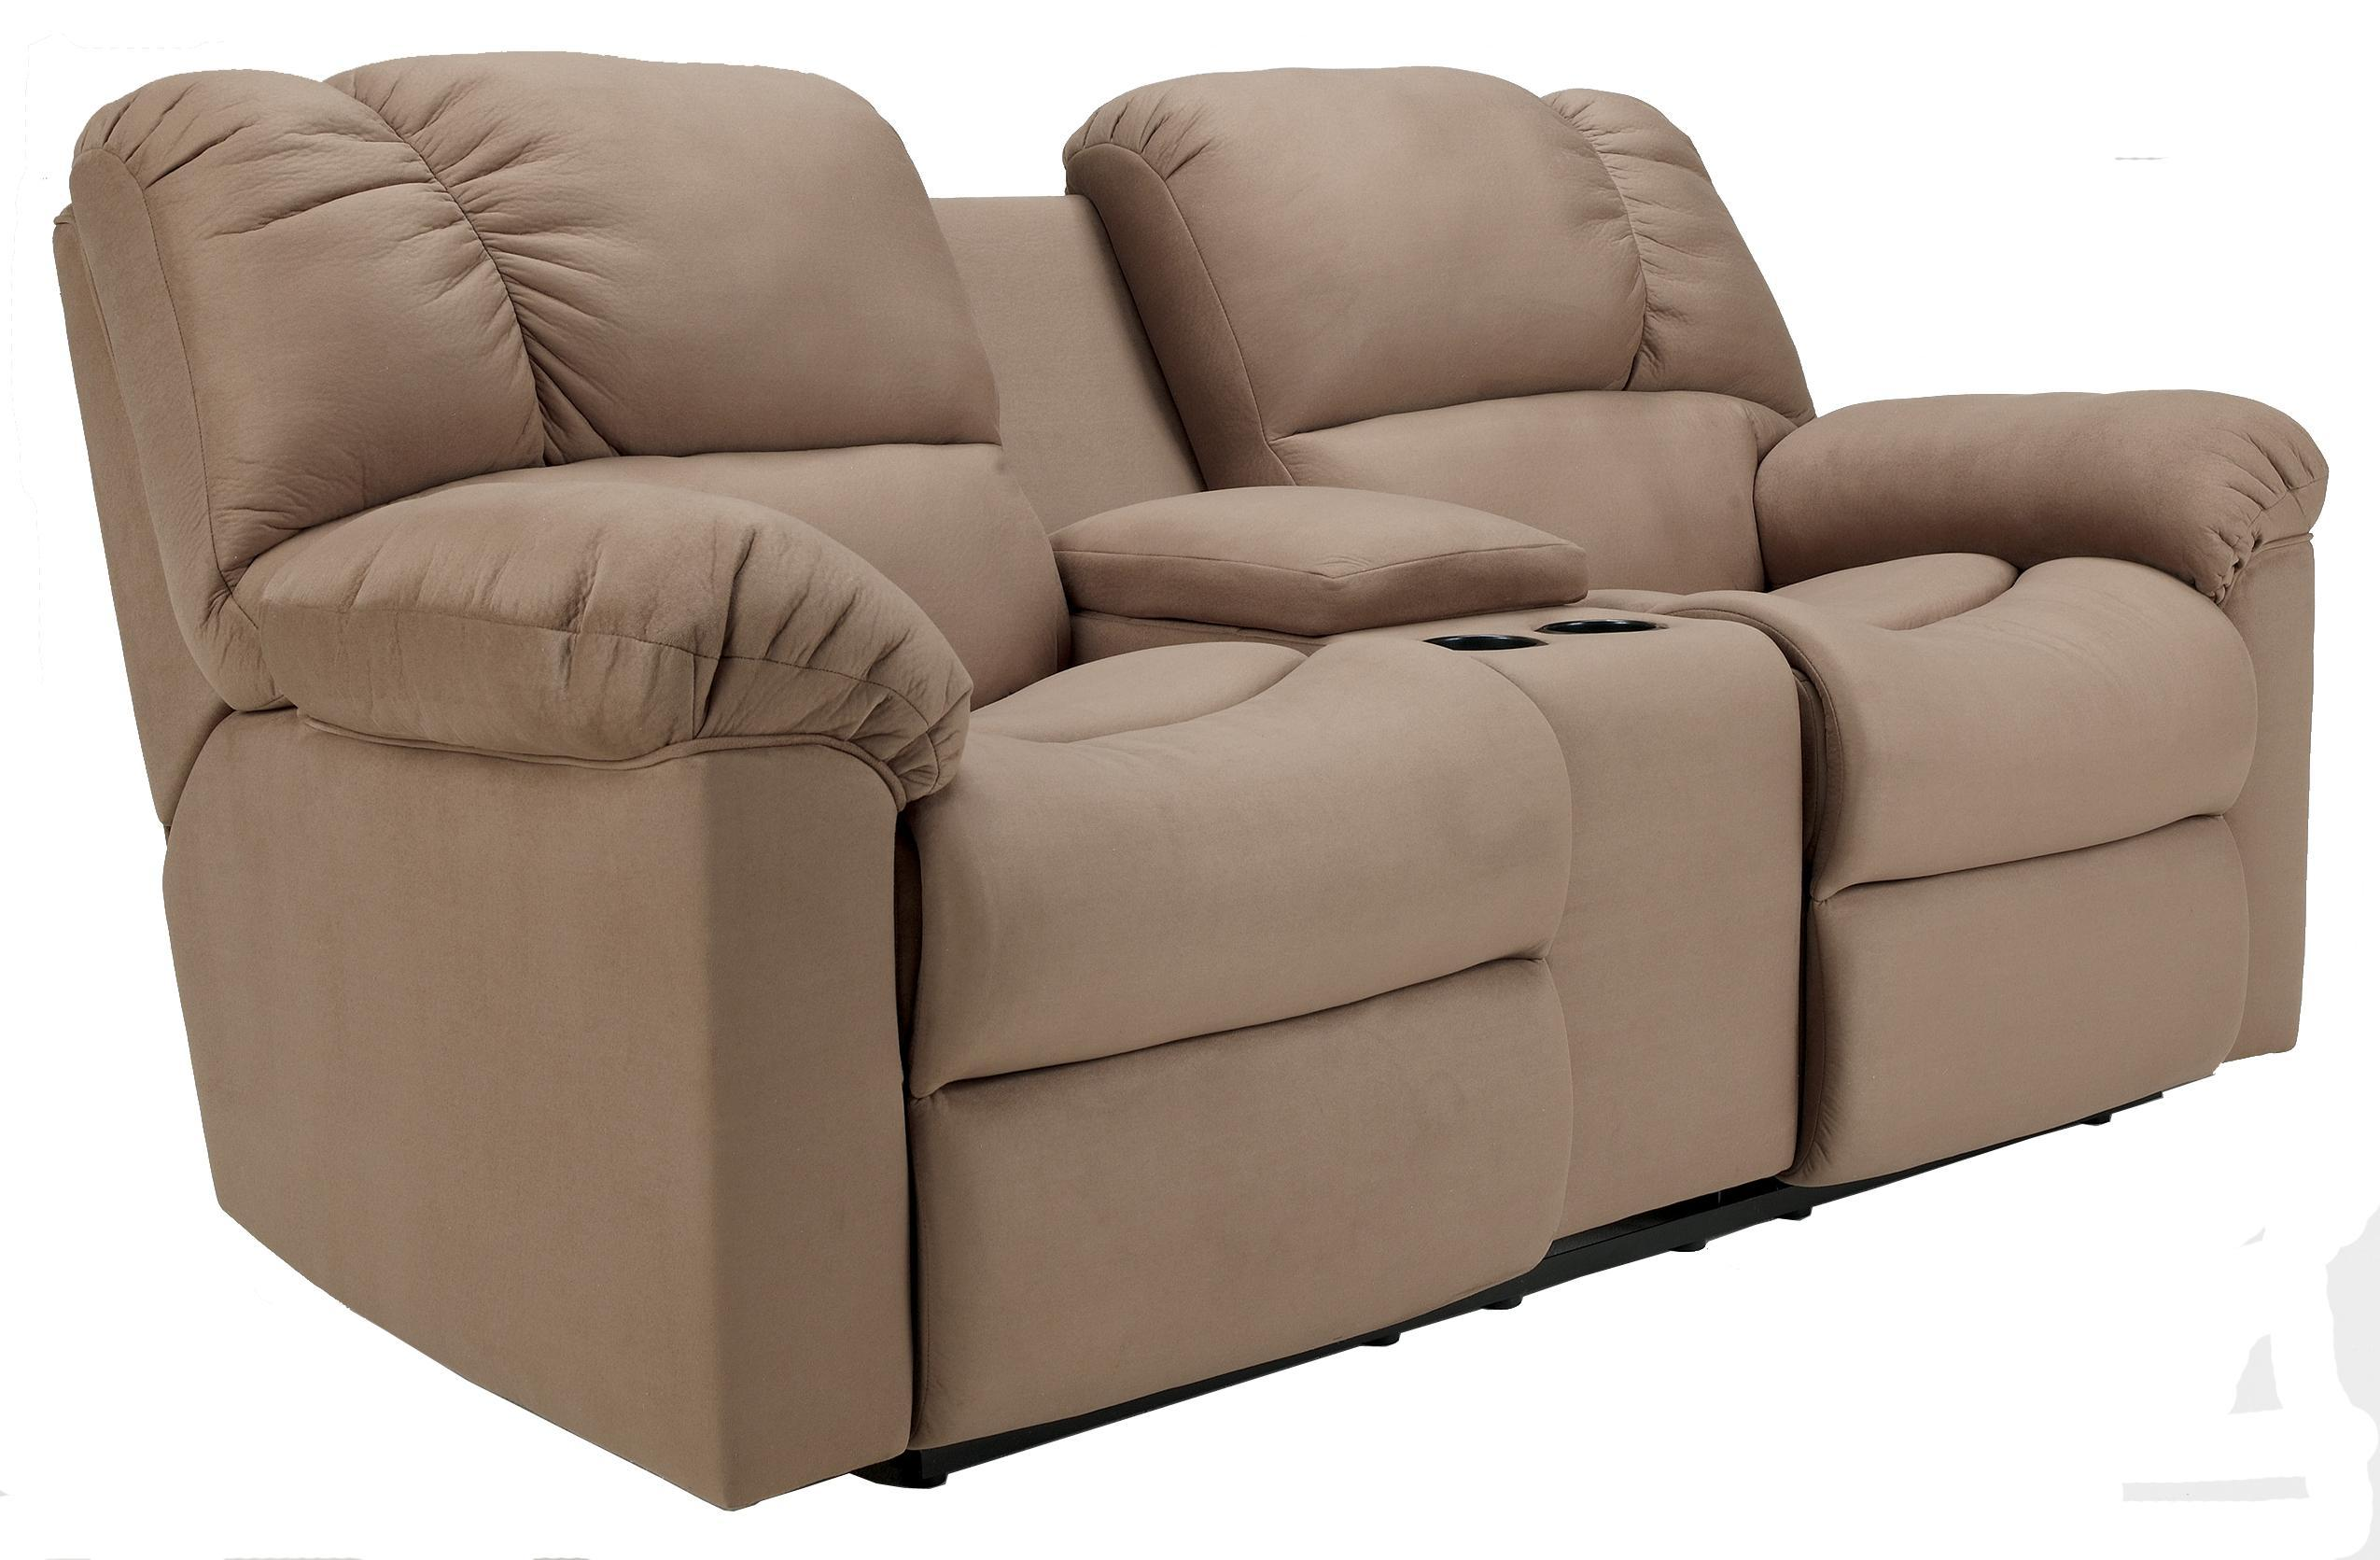 Reclining Sofa And Loveseat Ashley Furniture Ashley Reclining Loveseat